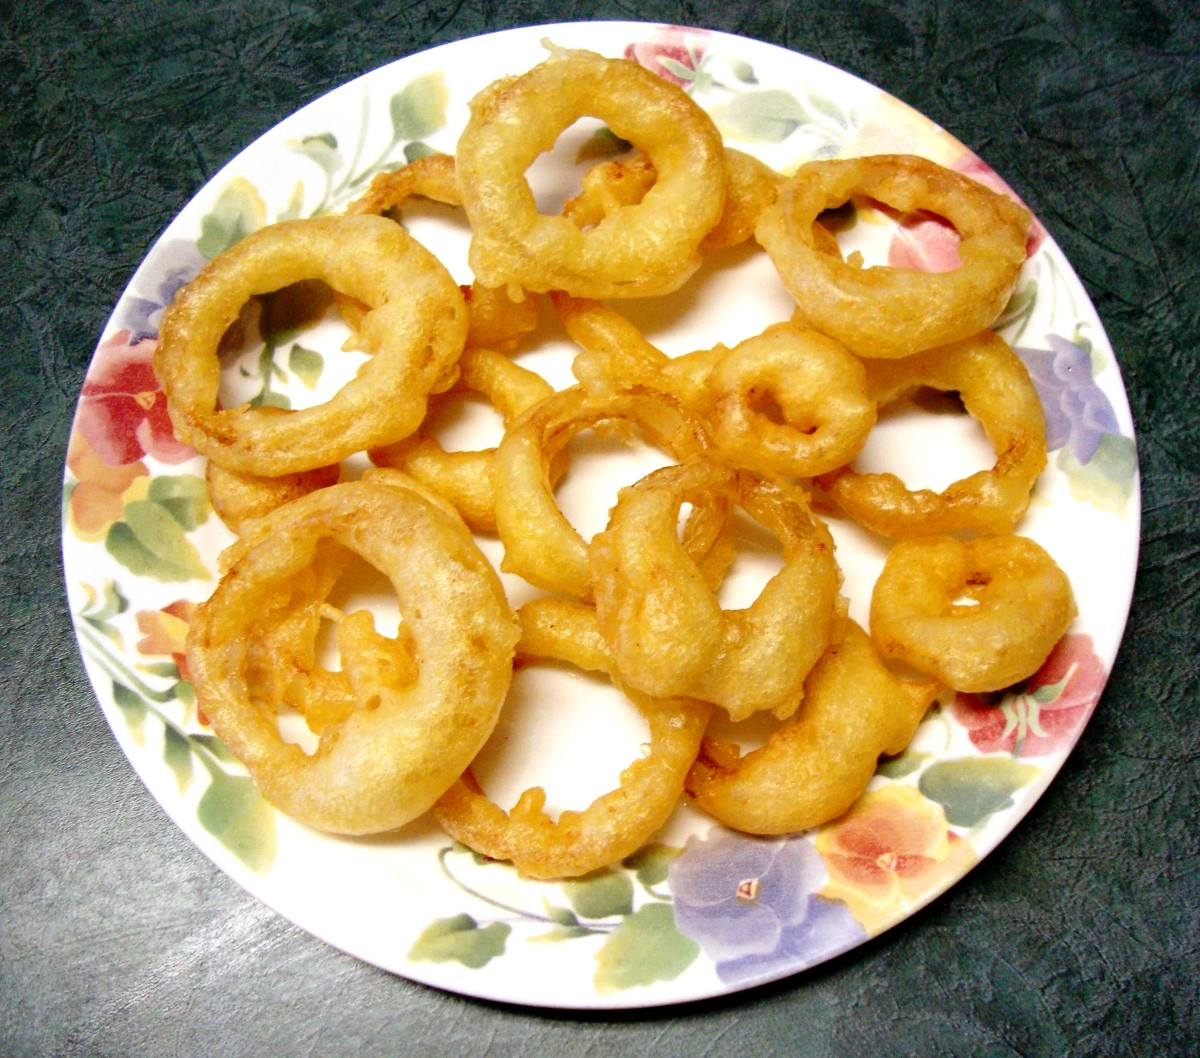 Puffy fried onions rings made in the home kitchen.